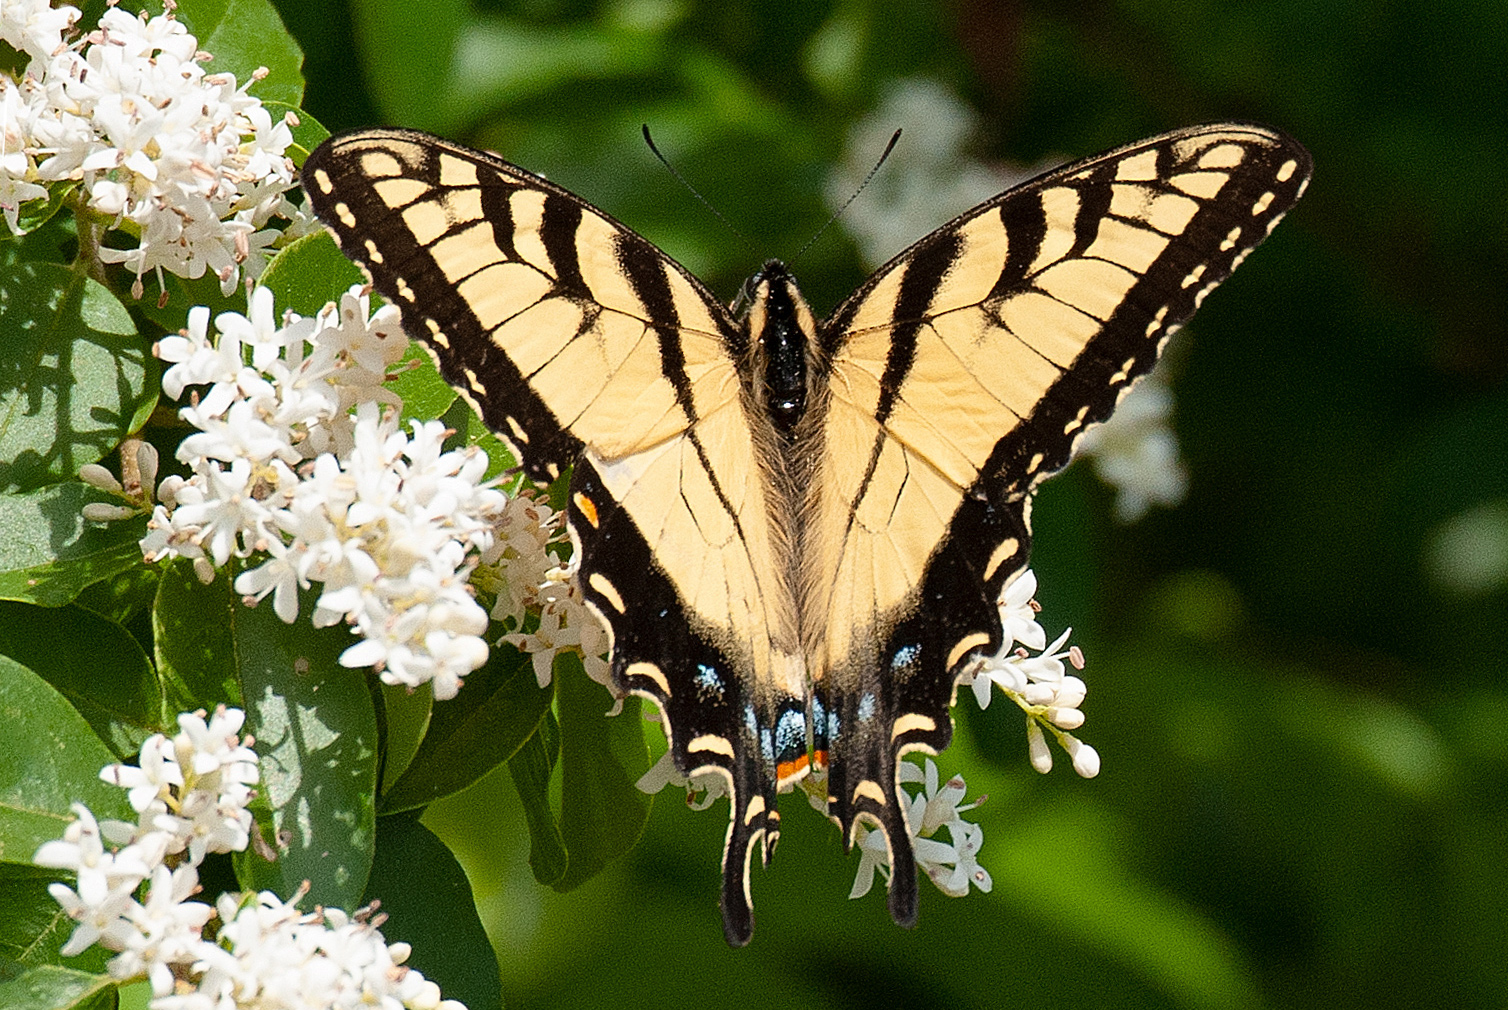 Appalachian Tiger Swallowtail (Papilio appalachiensis)